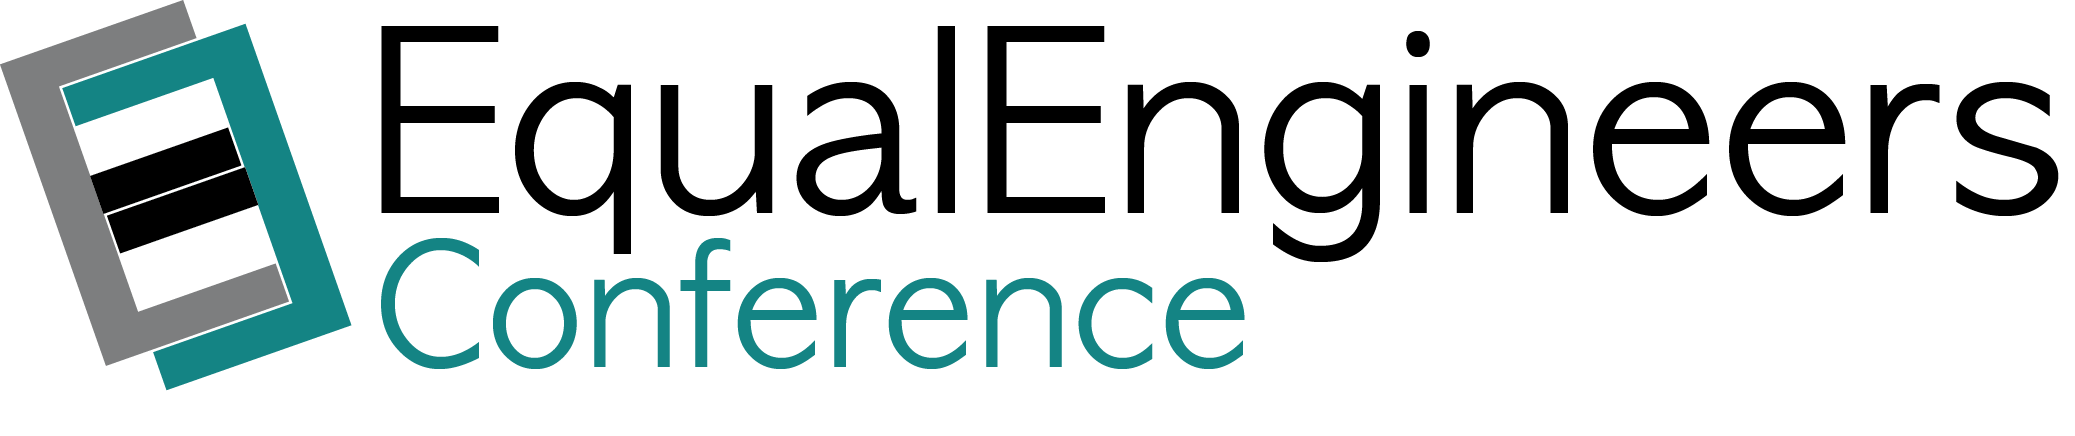 EqualEngineers Conference logo